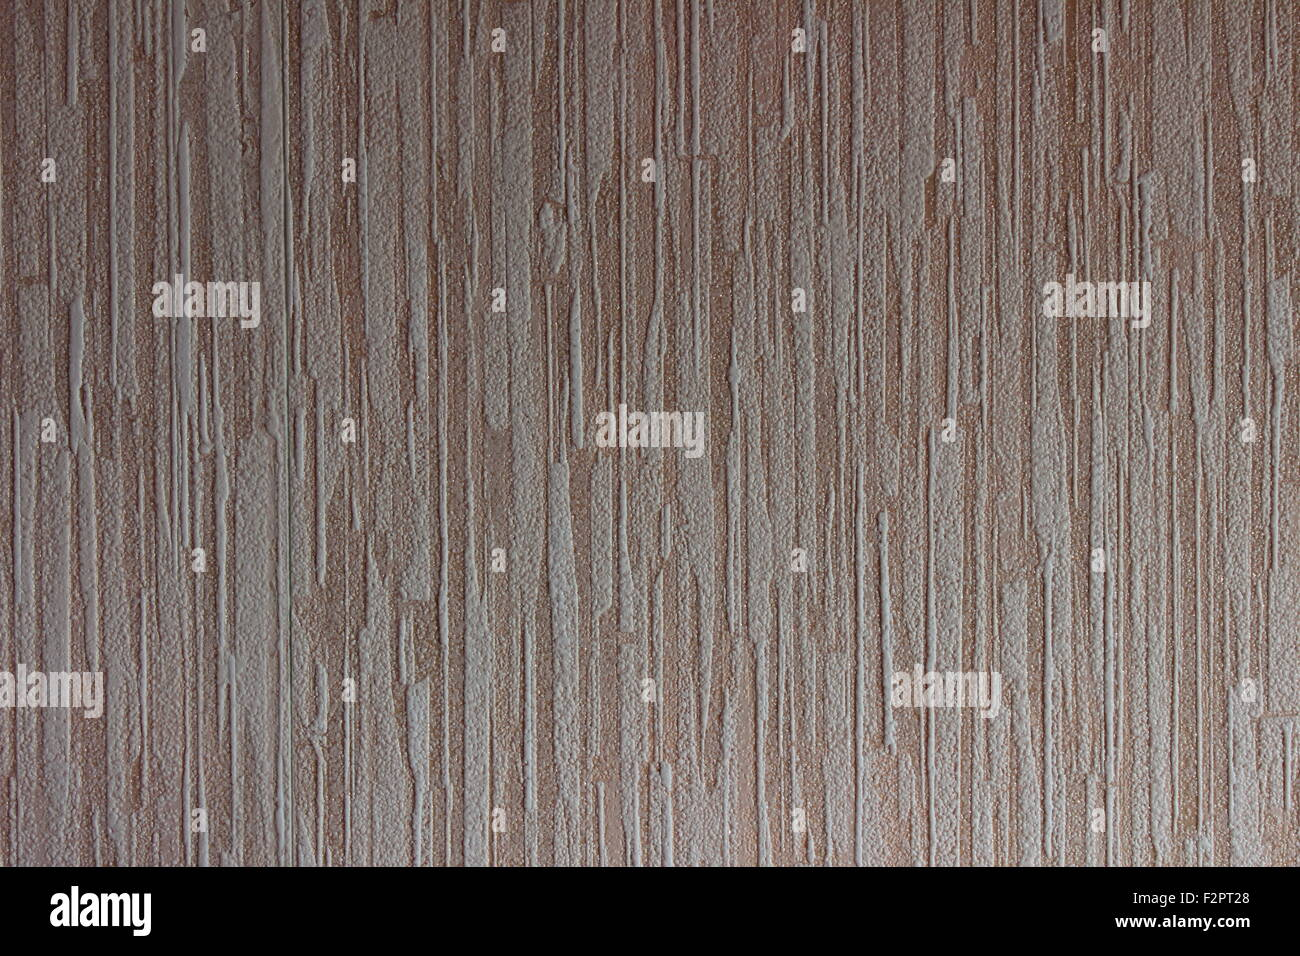 texture as wallpaper on the wall - Stock Image